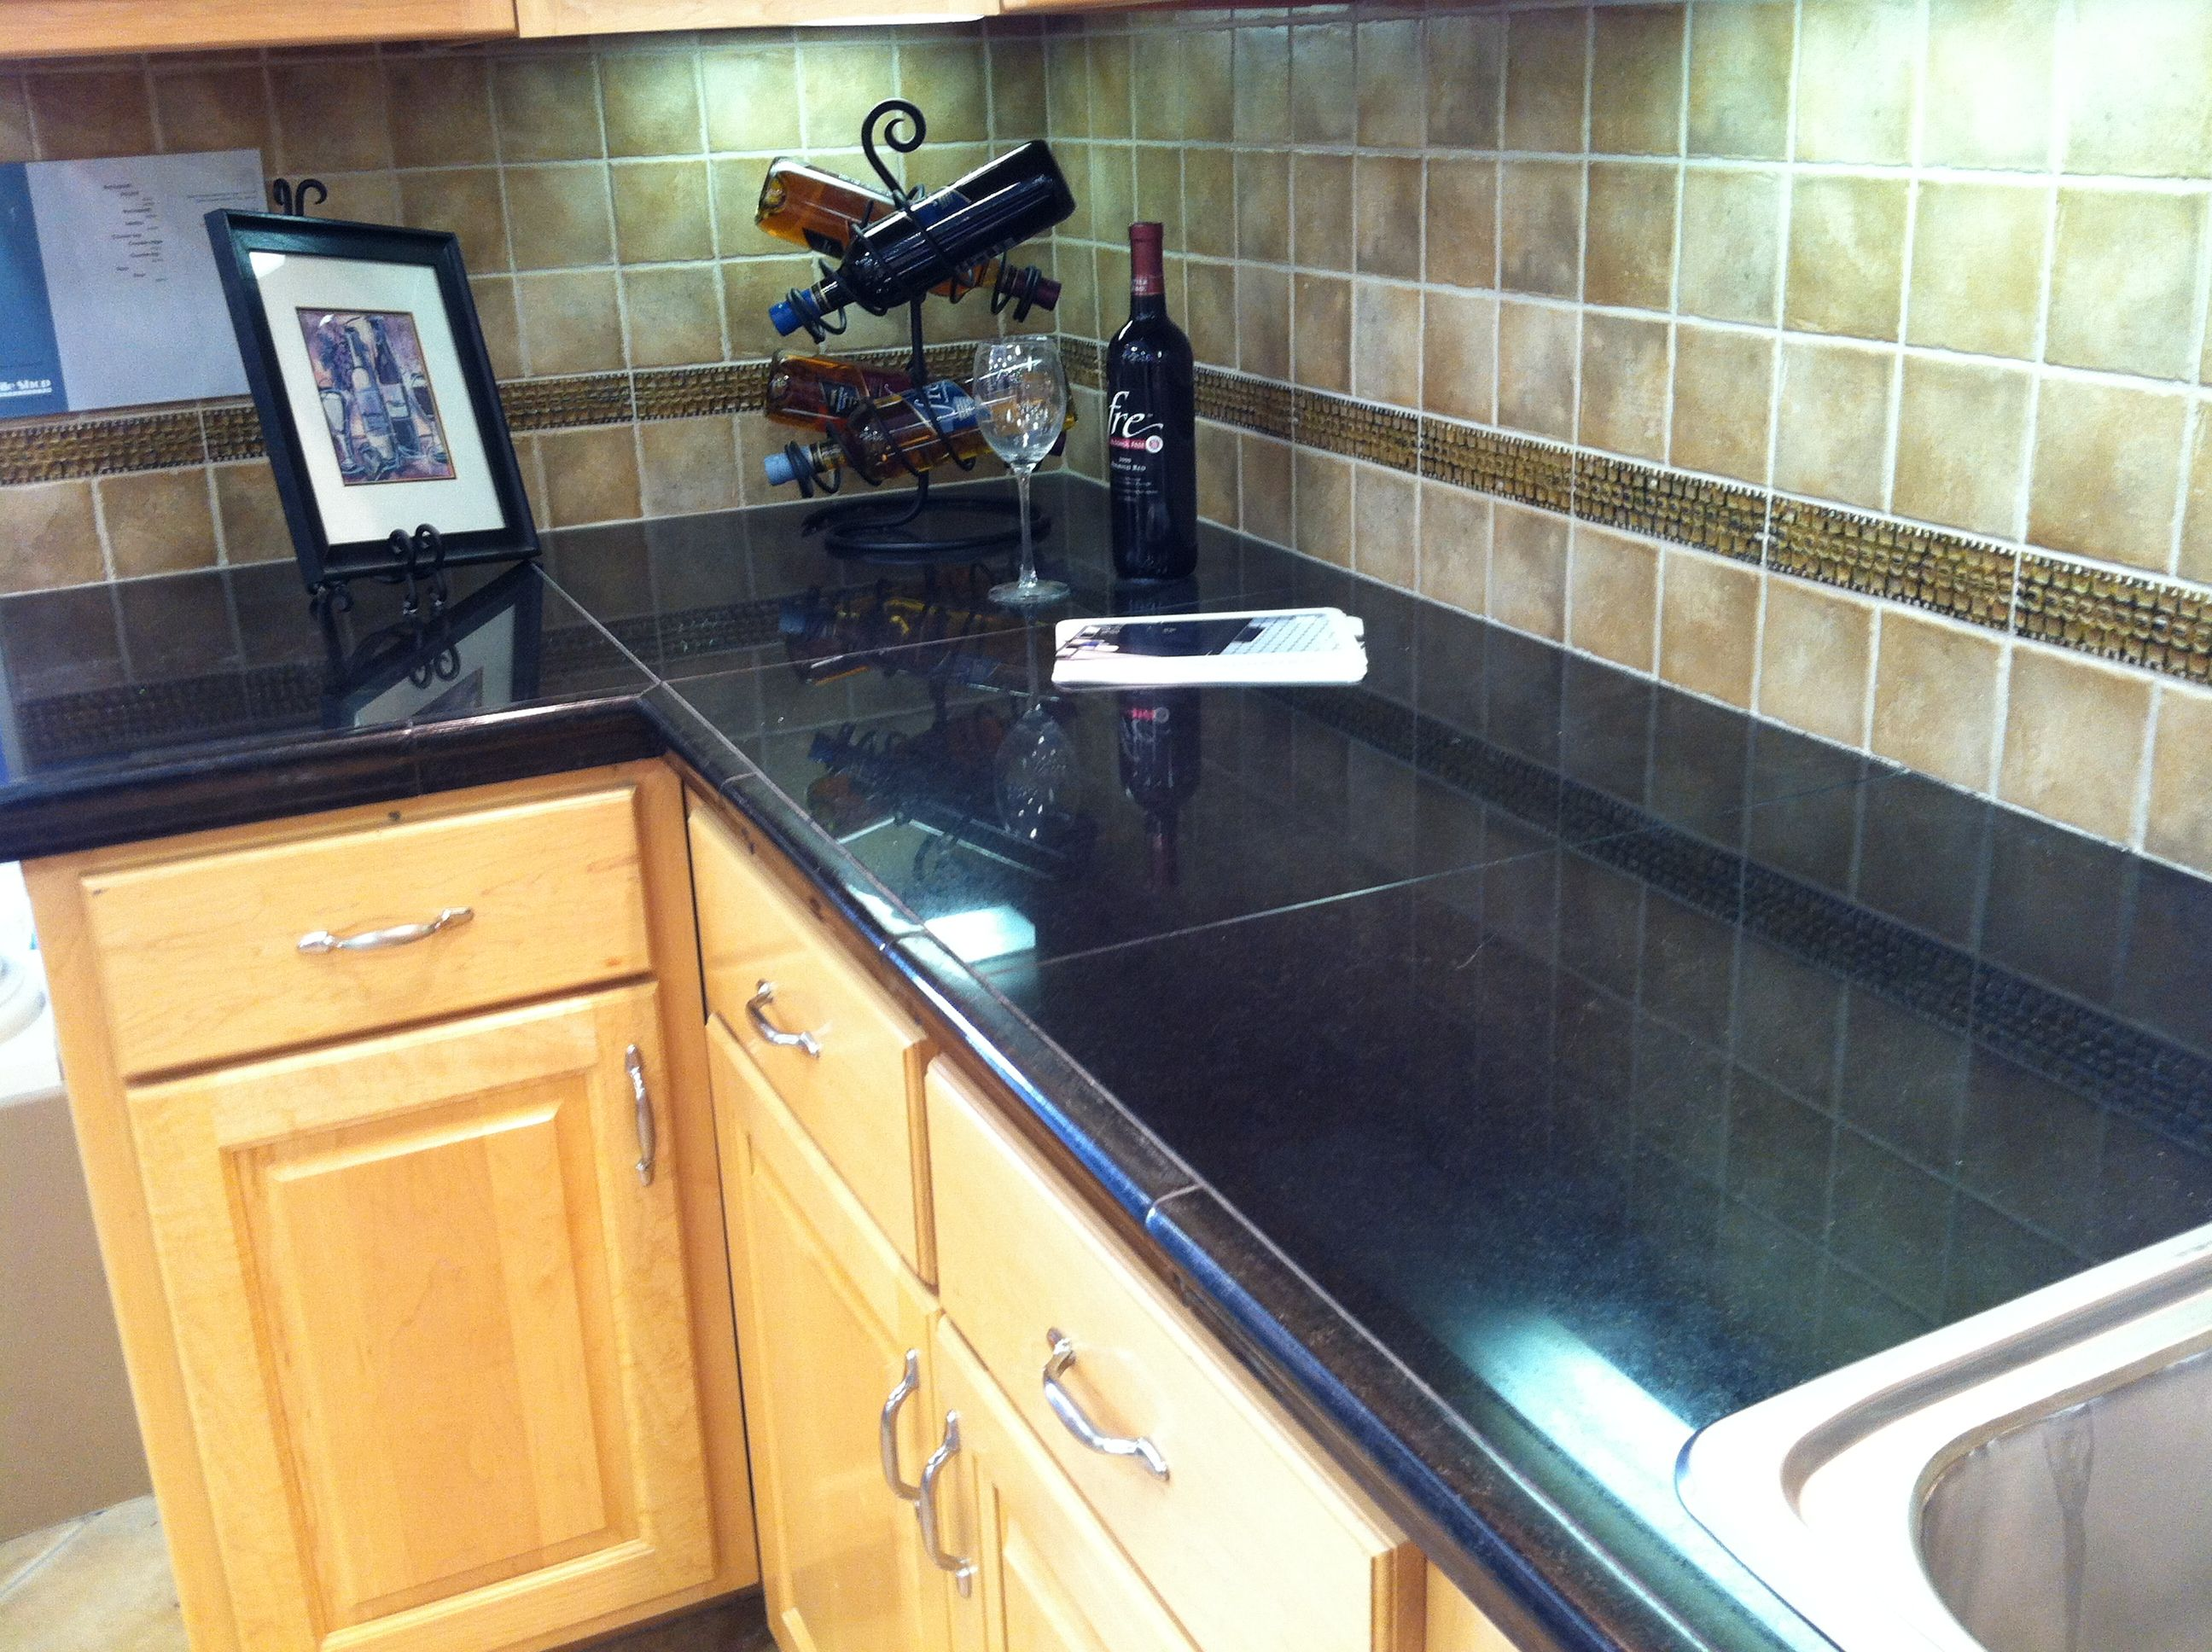 Tiled countertop instead of slab